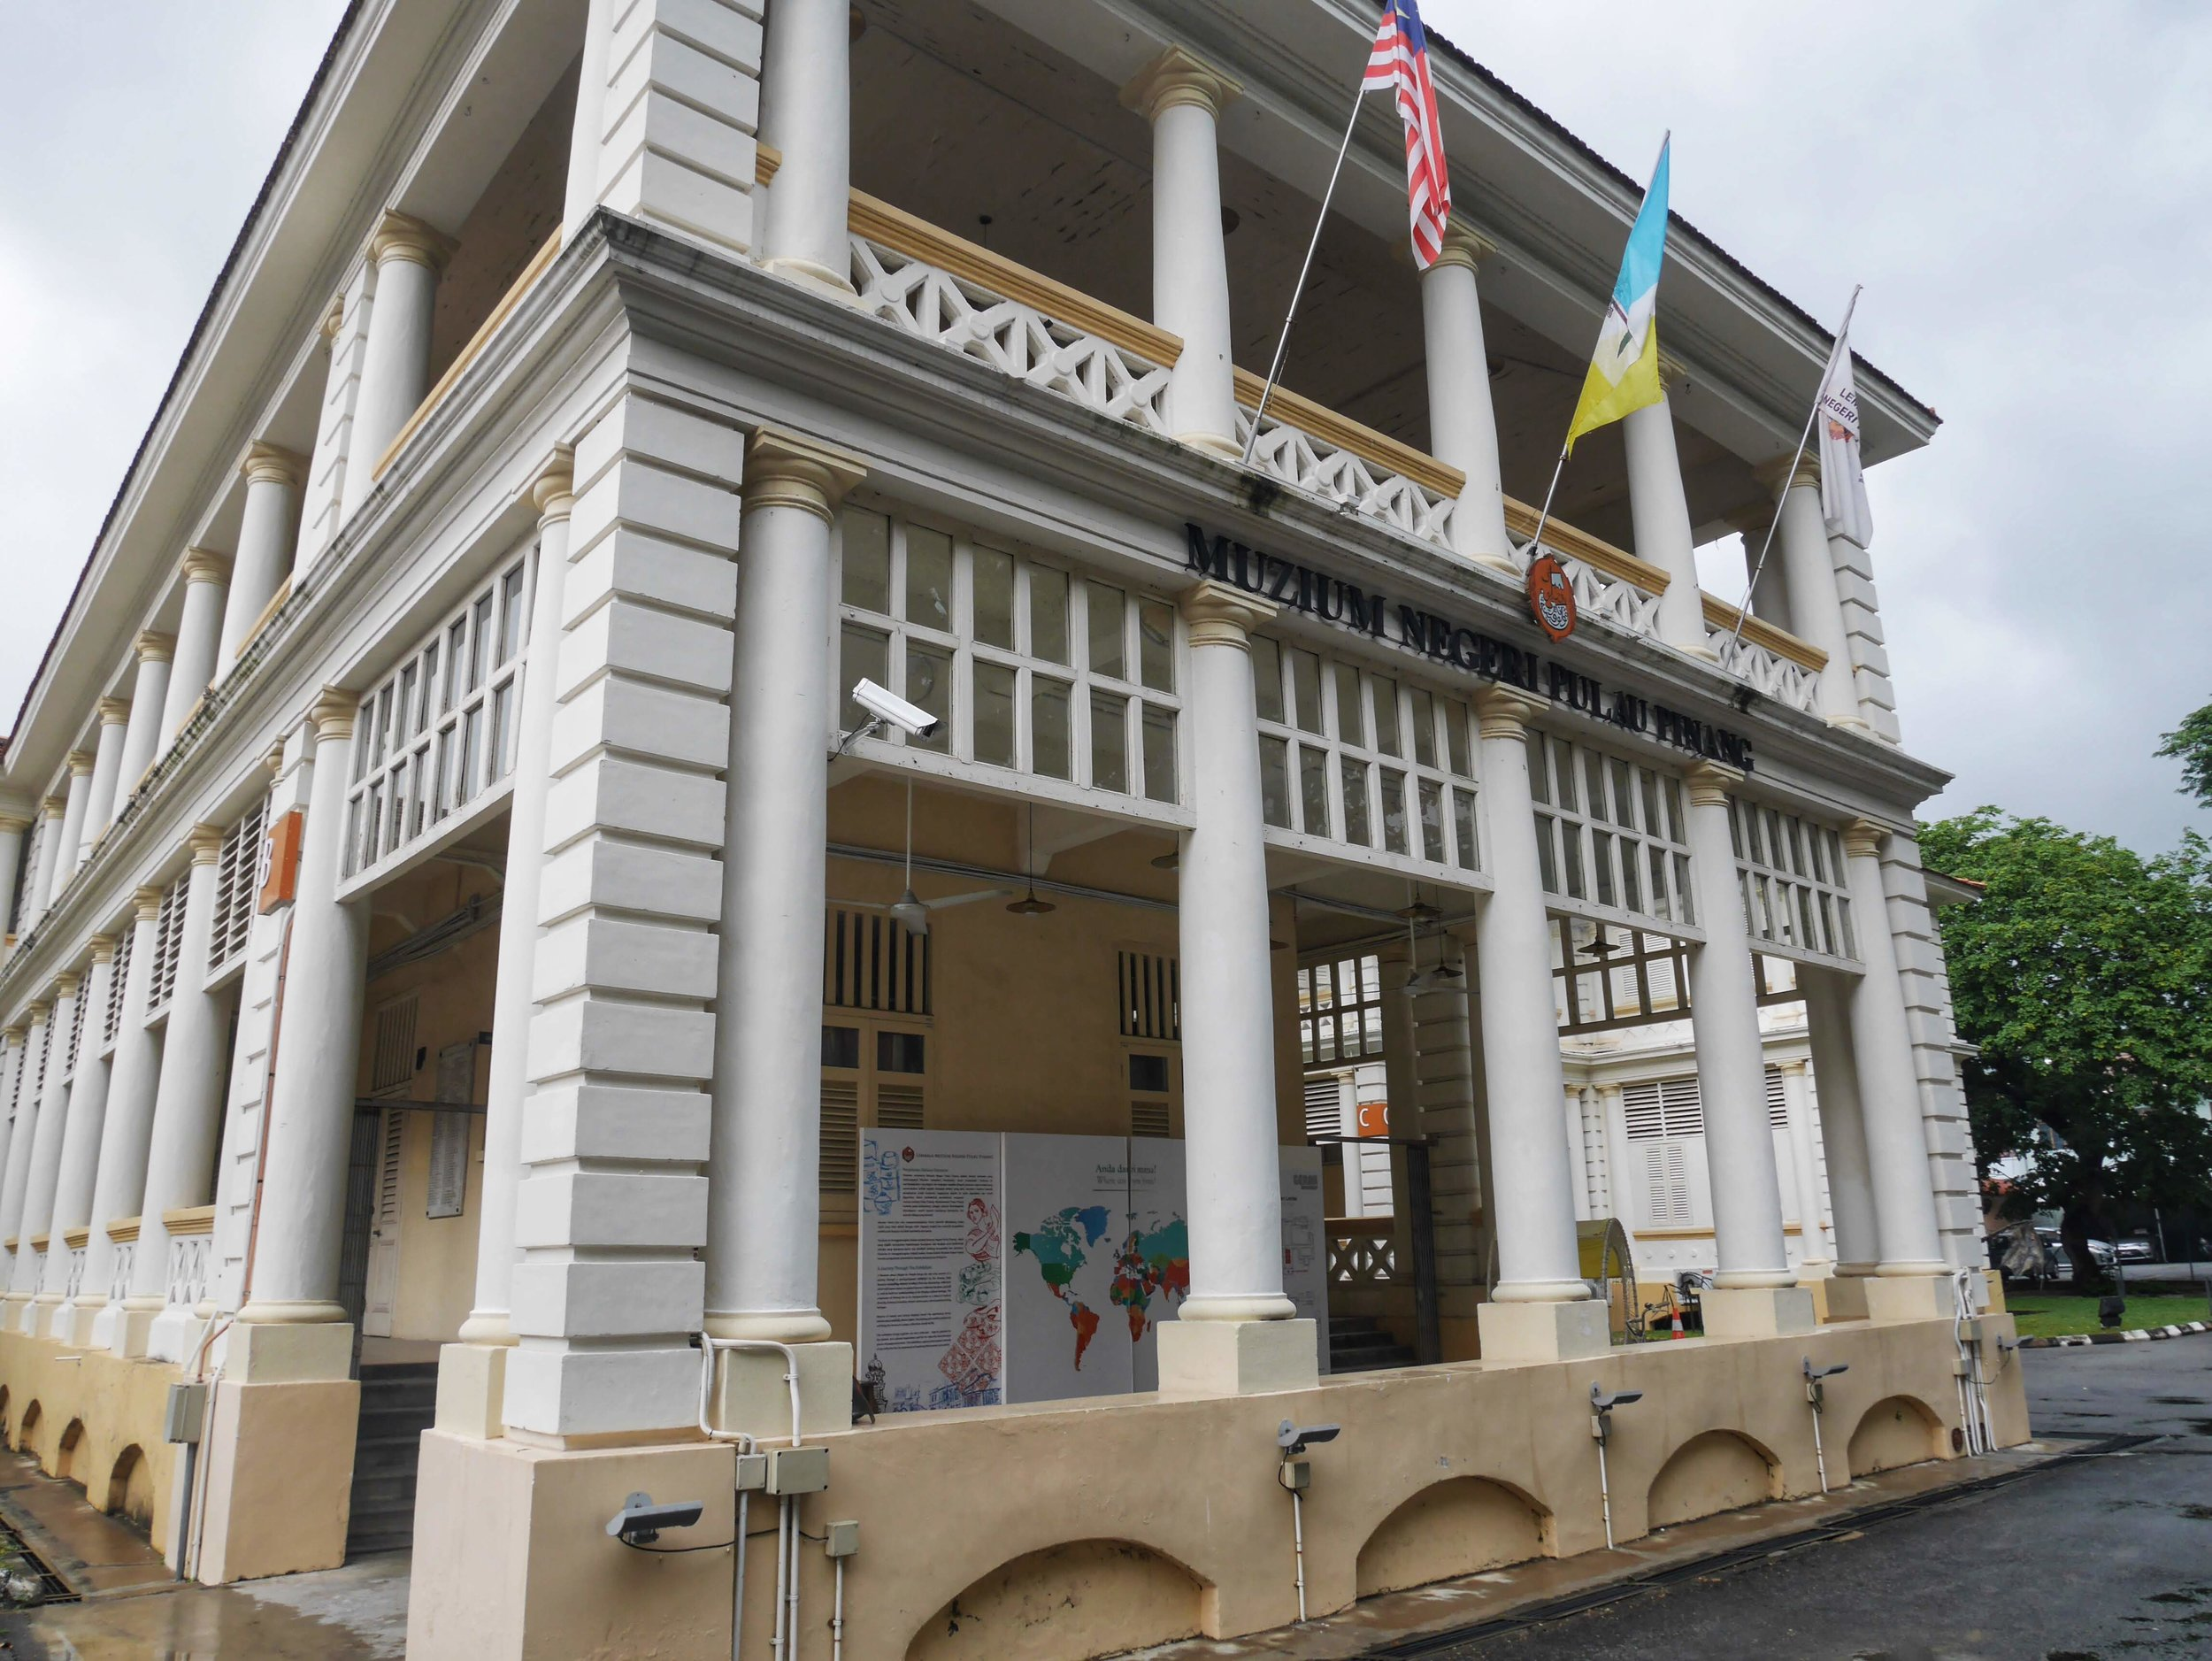 the Penang State Museum is small, but contains a great collection about the state's history